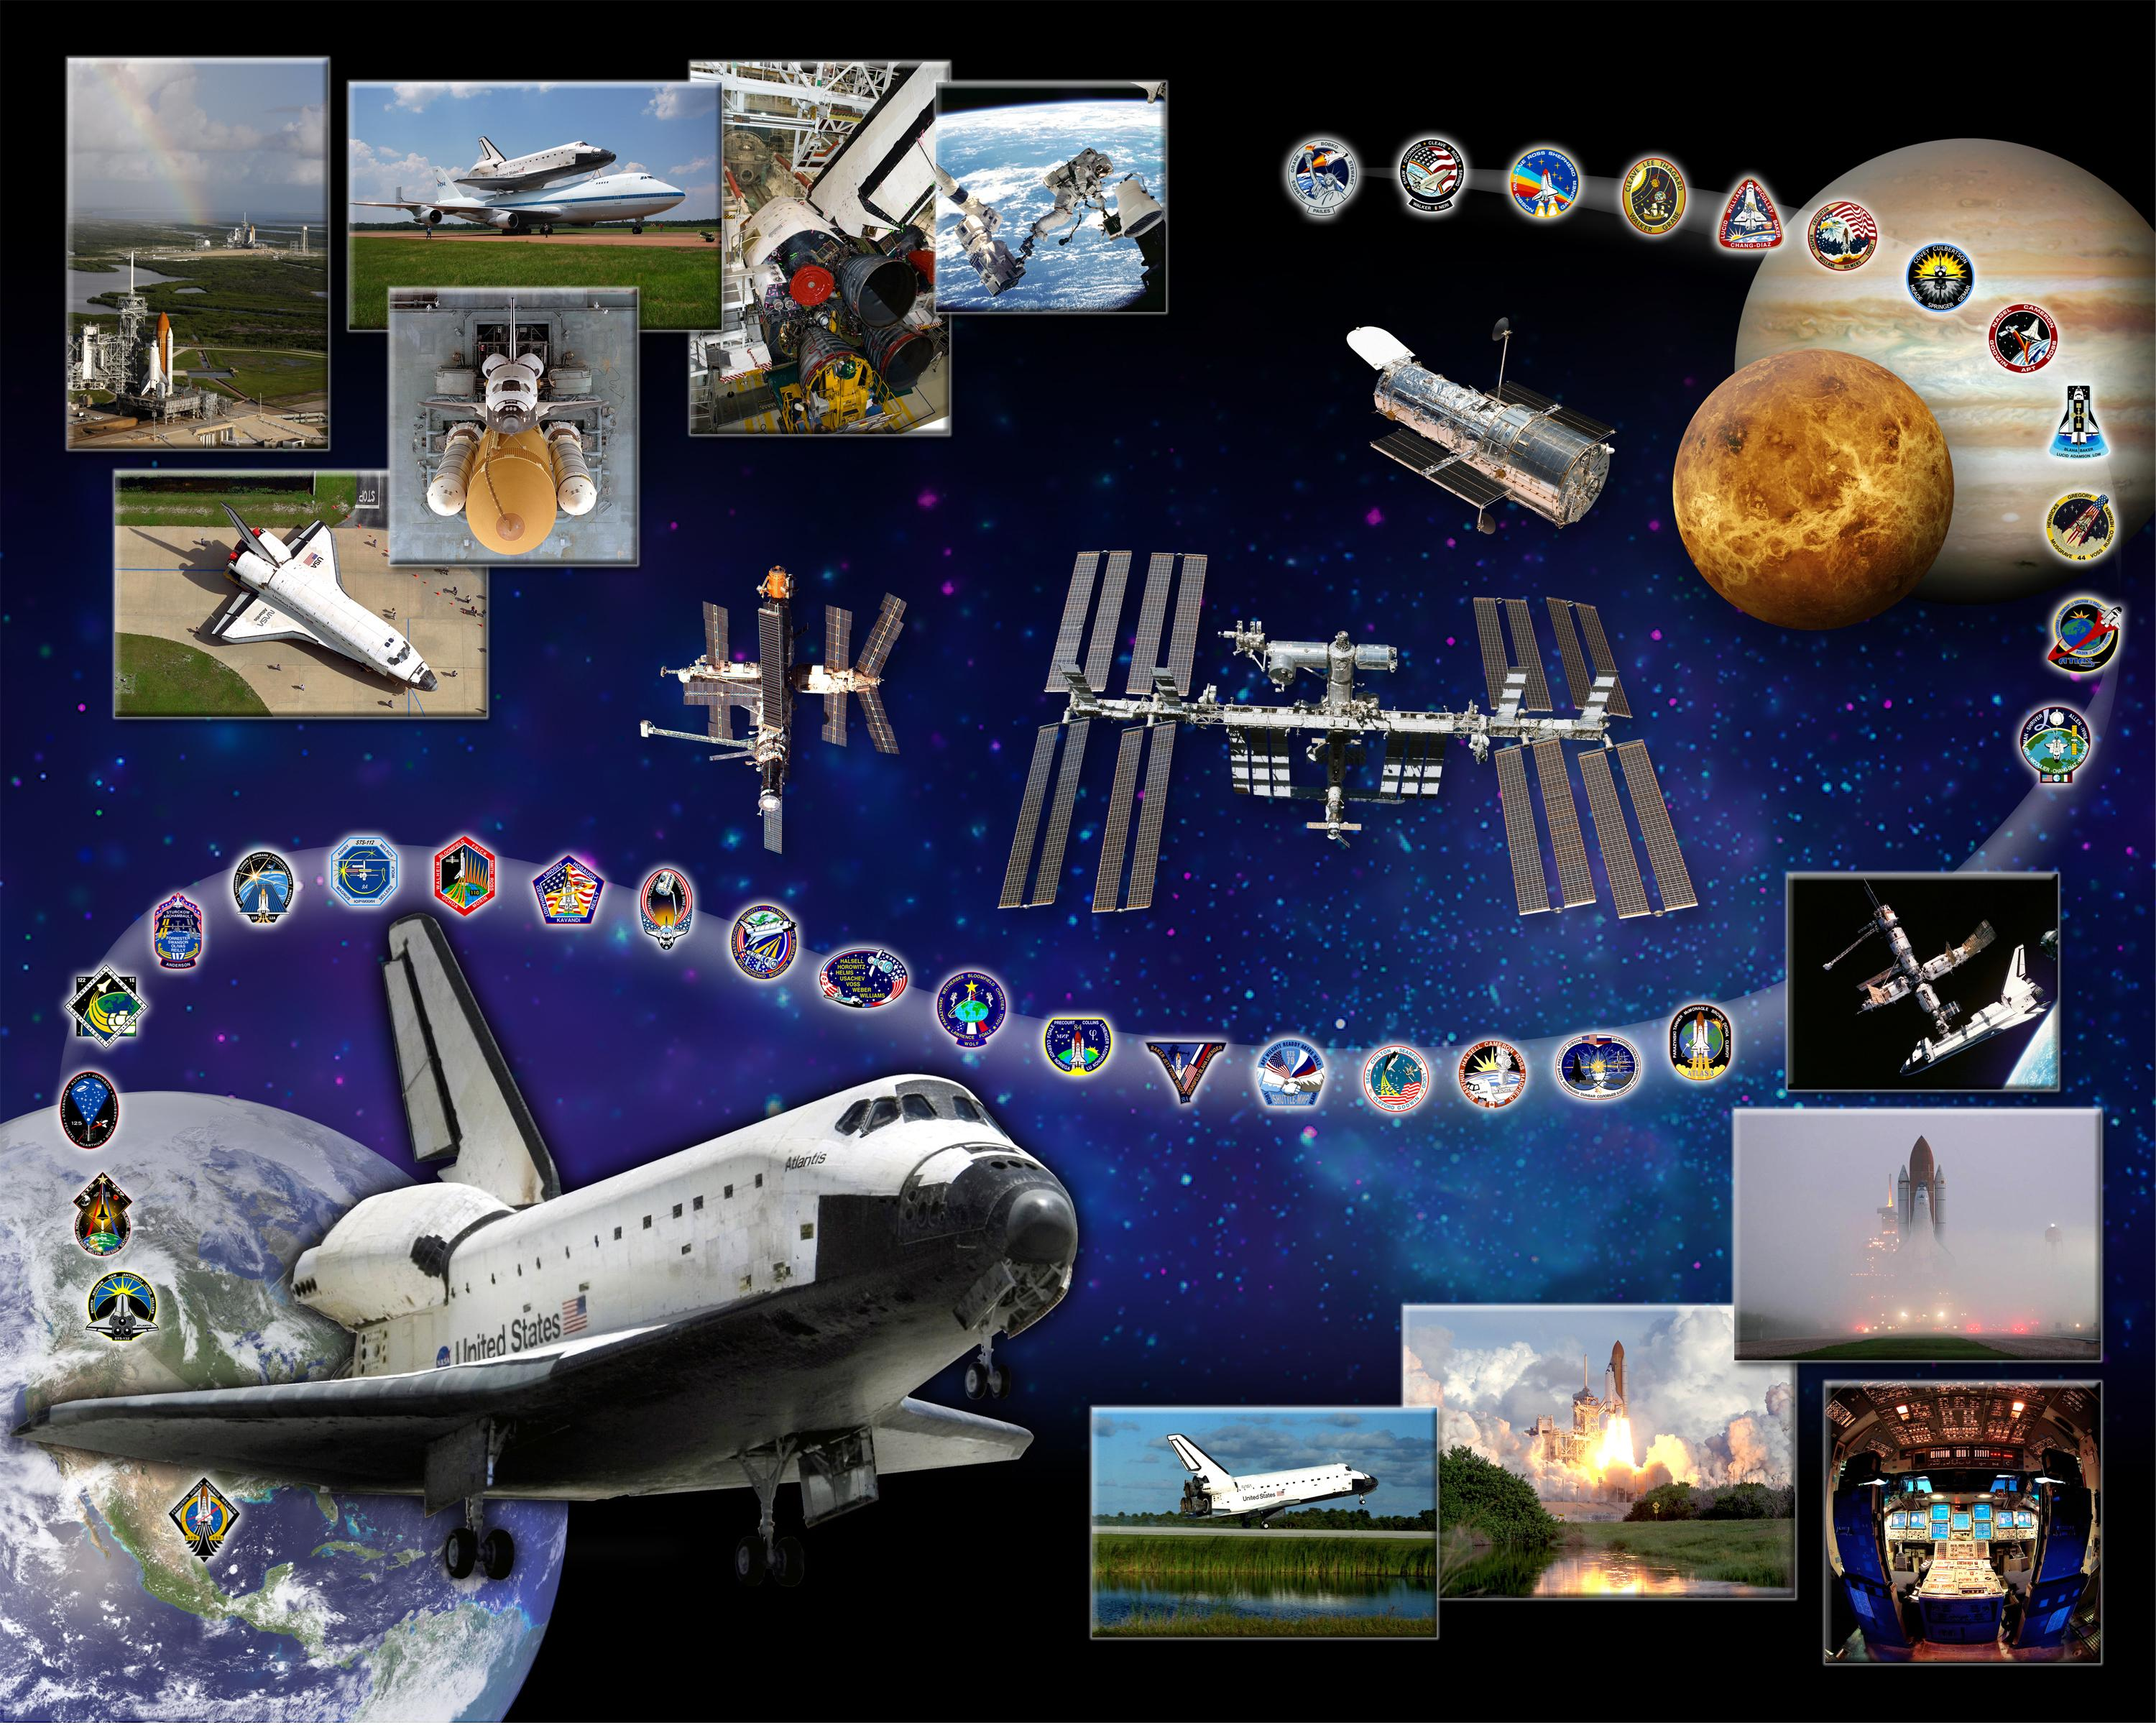 space shuttle atlantis accomplishments - photo #9